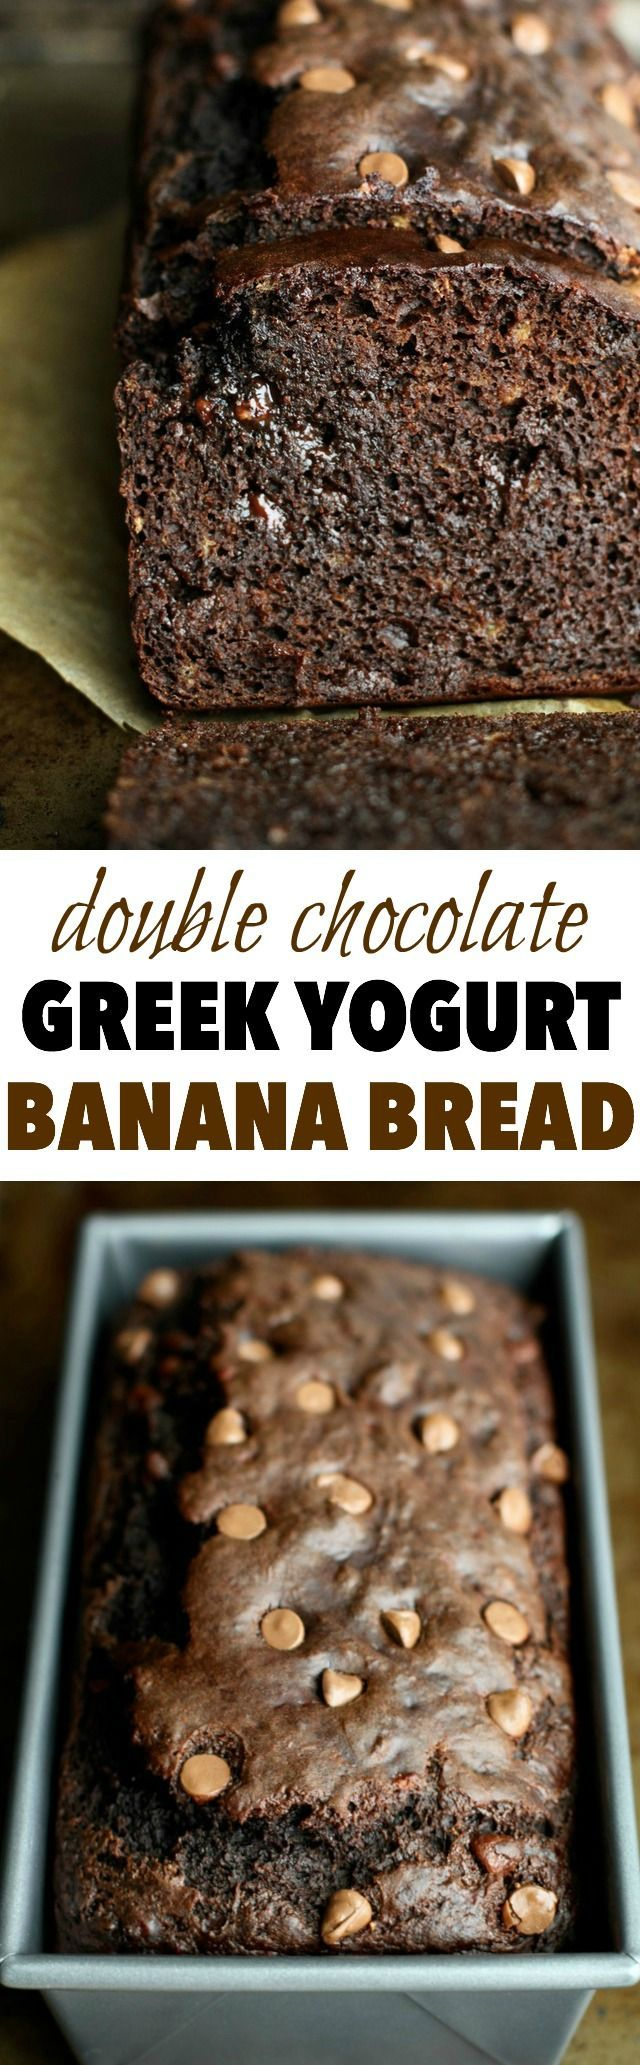 This Double Chocolate Greek Yogurt Banana Bread is LOADED with chocolate flavour, and so soft and tender that you'd never be able to tell it's made with NO butter or oil! || runningwithspoons... #chocolate #healthy